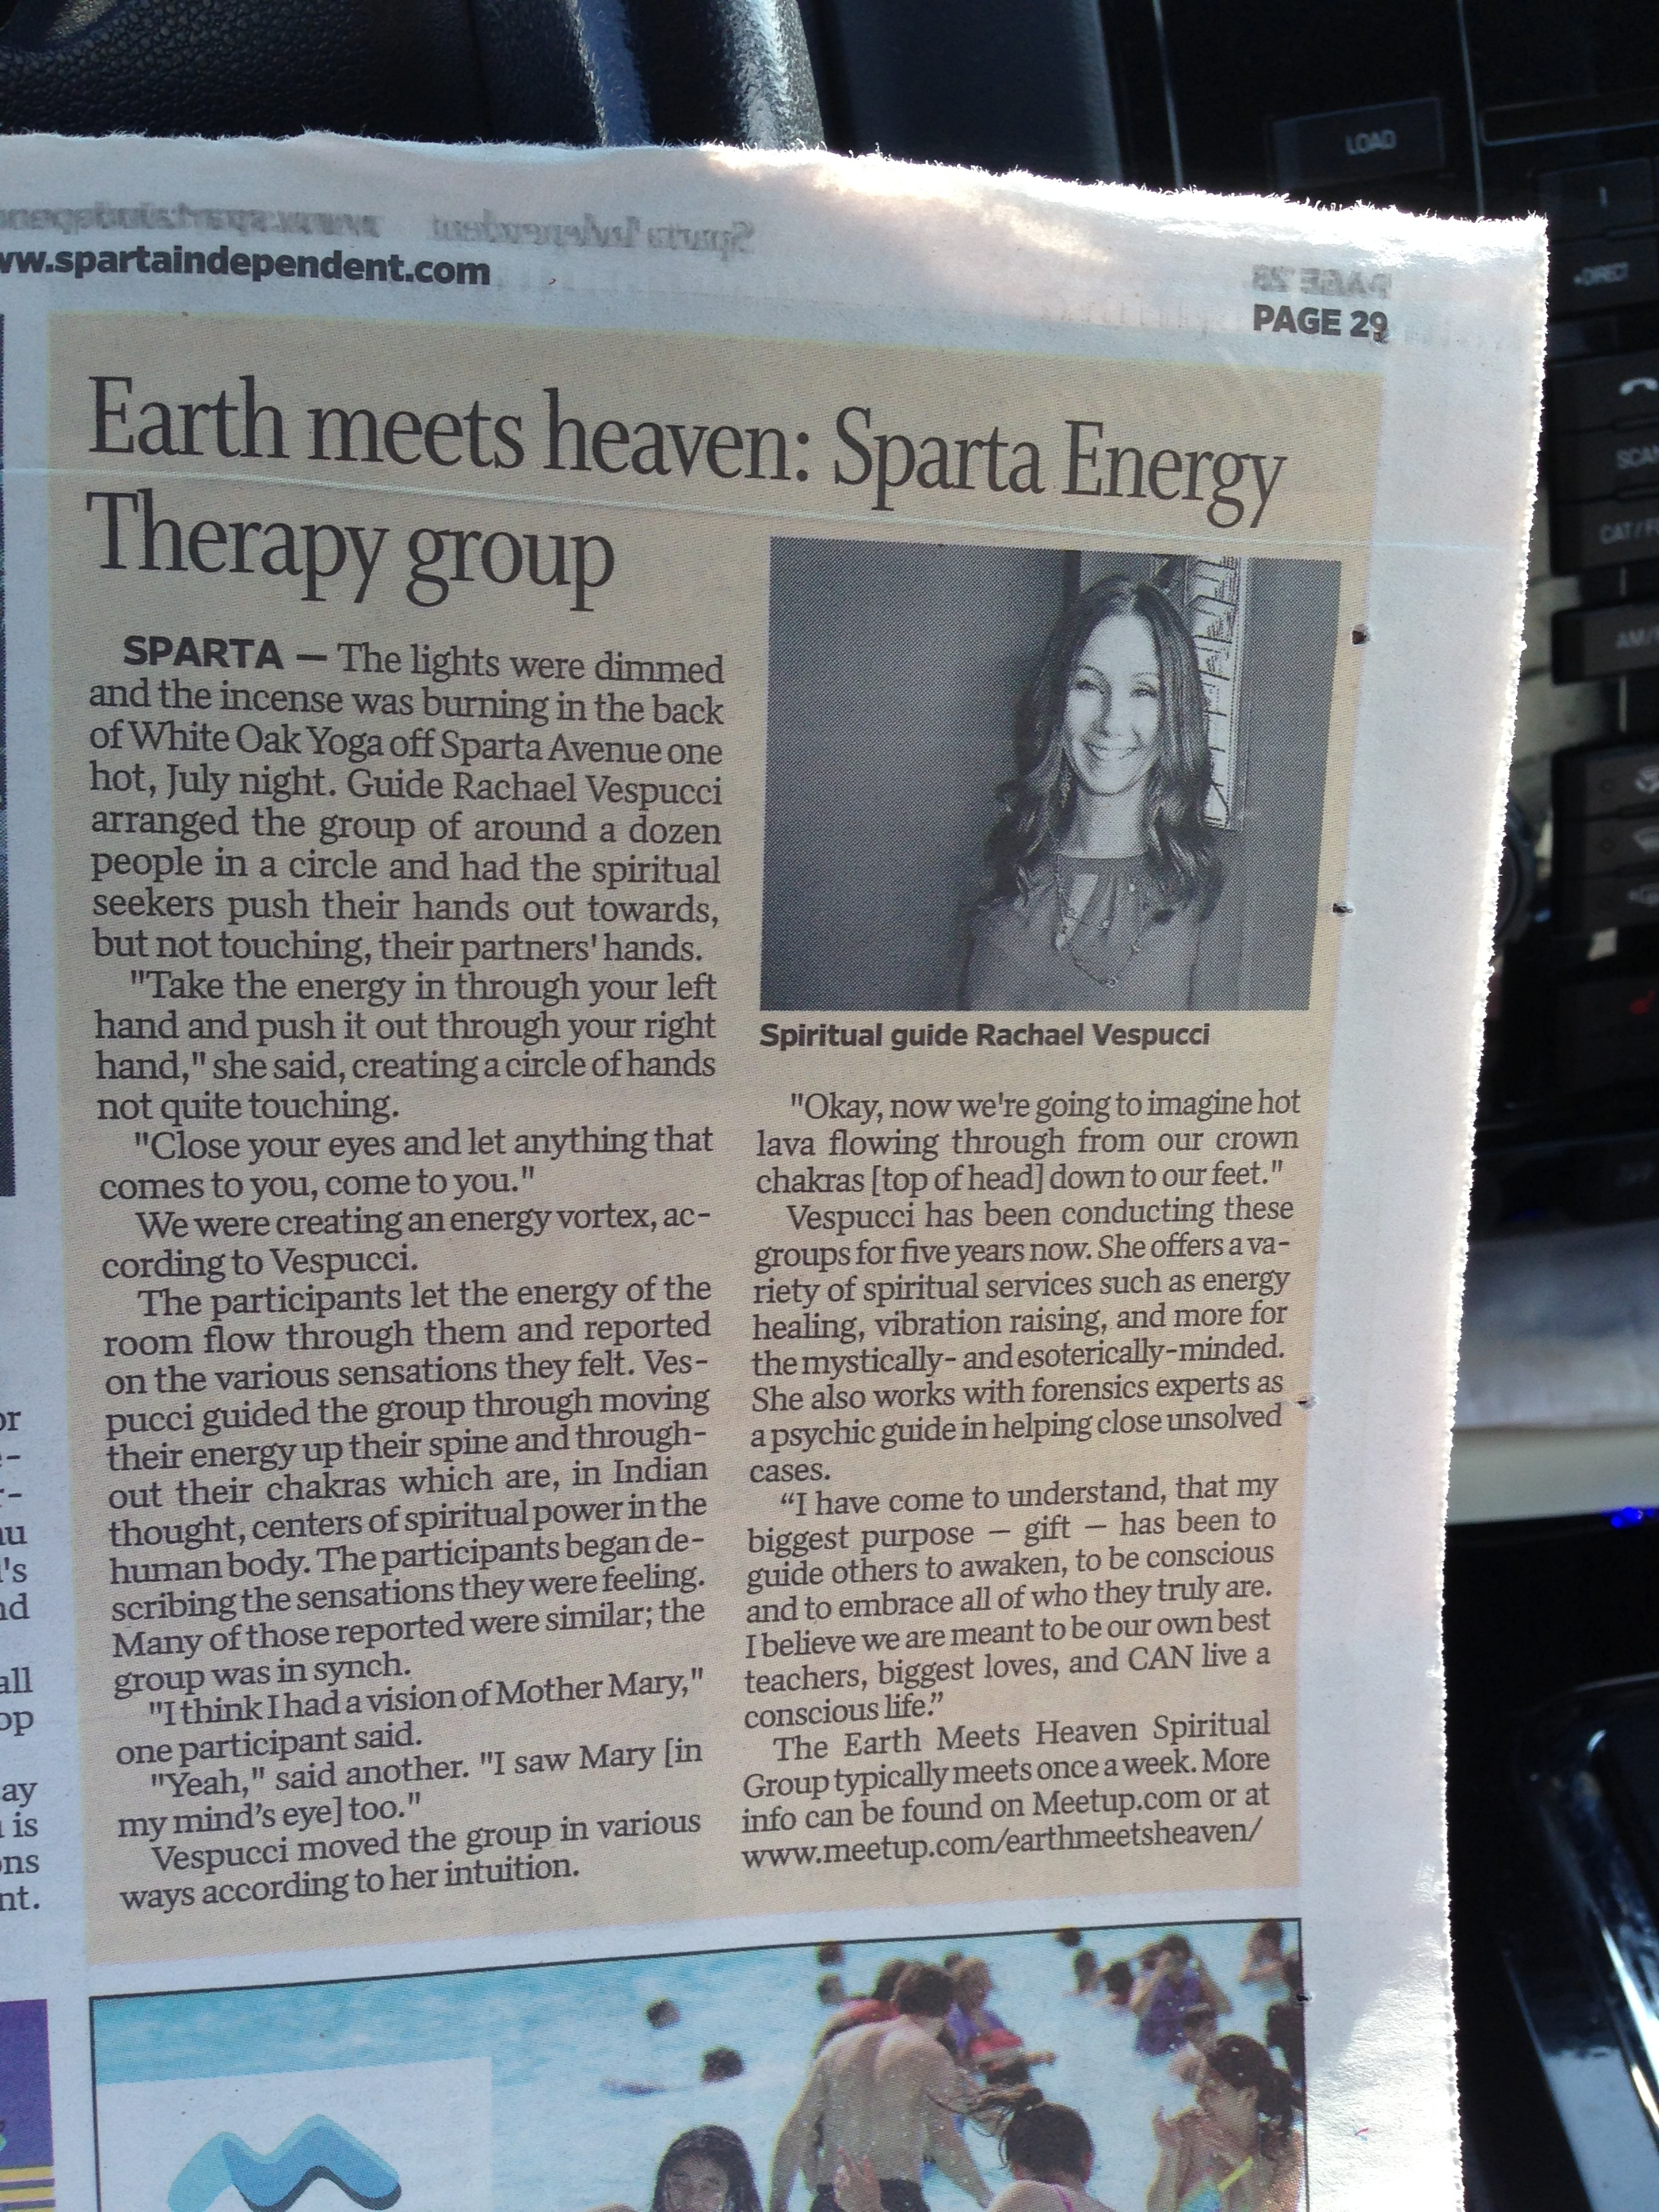 Proudly featured in the Sparta Independent